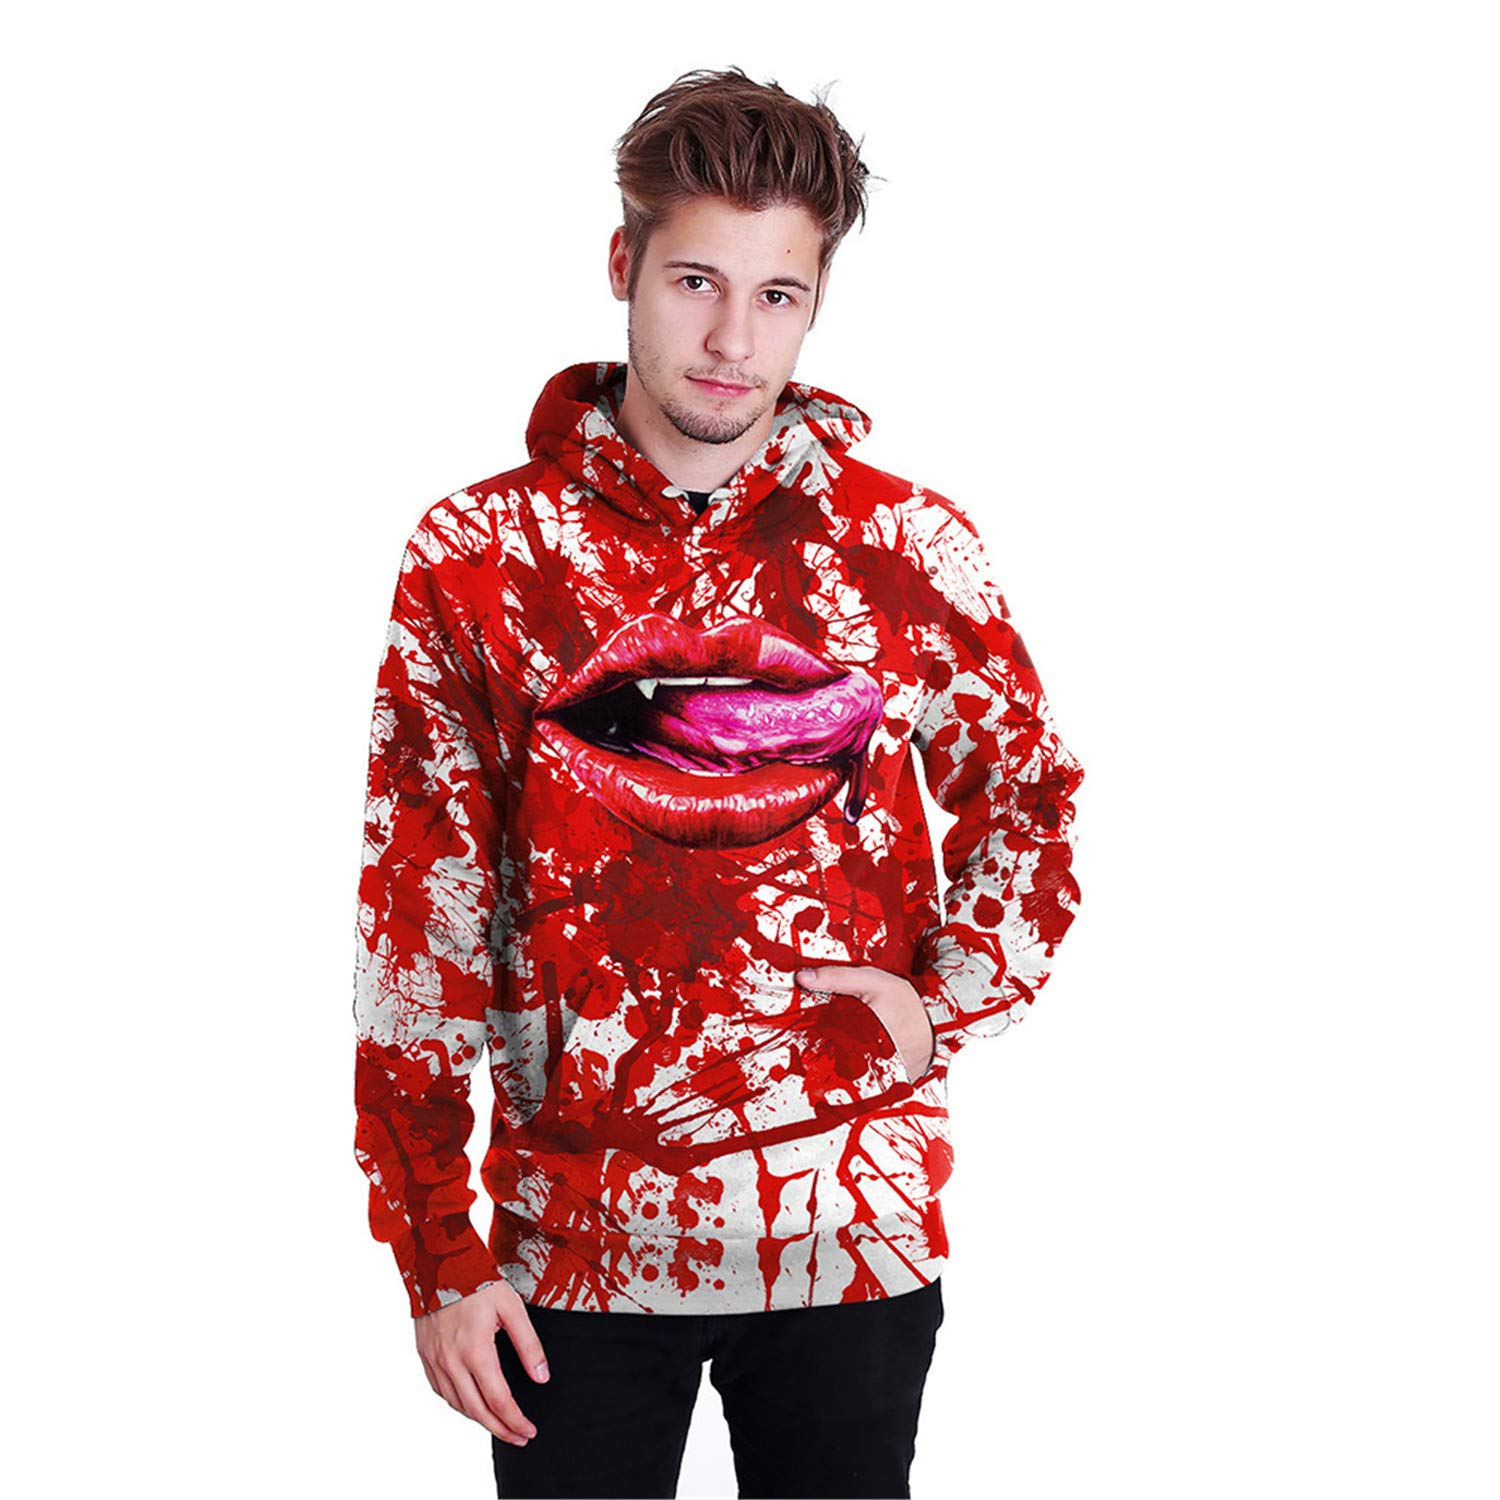 Mrsrui Unisex 3D Digital Printed Hoodies for Men Women Teen Red by Mrsrui